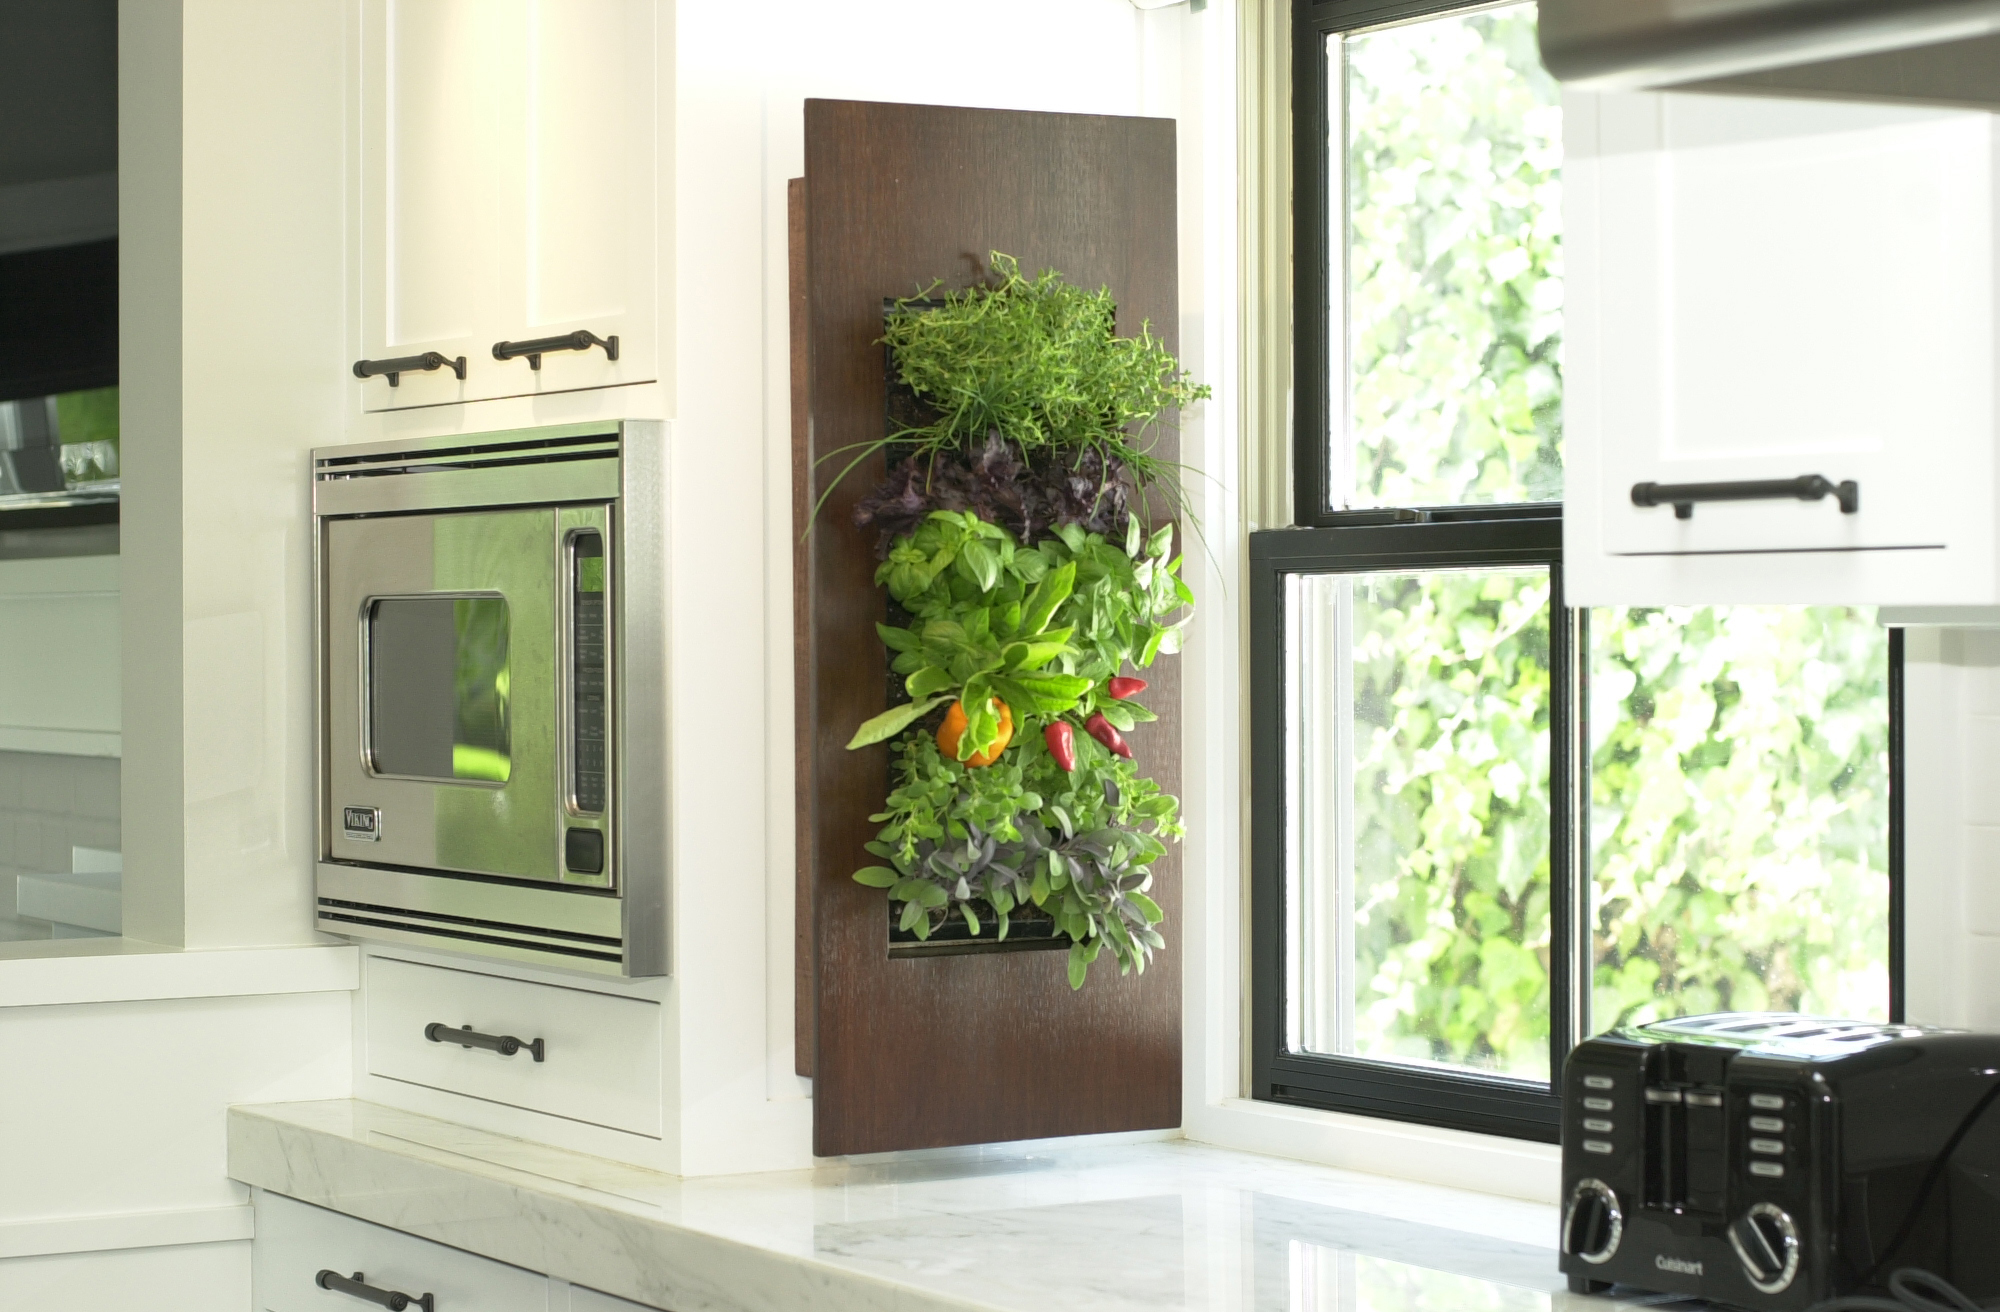 kitchens - Outdoor Planter Wall Kitchen Designs